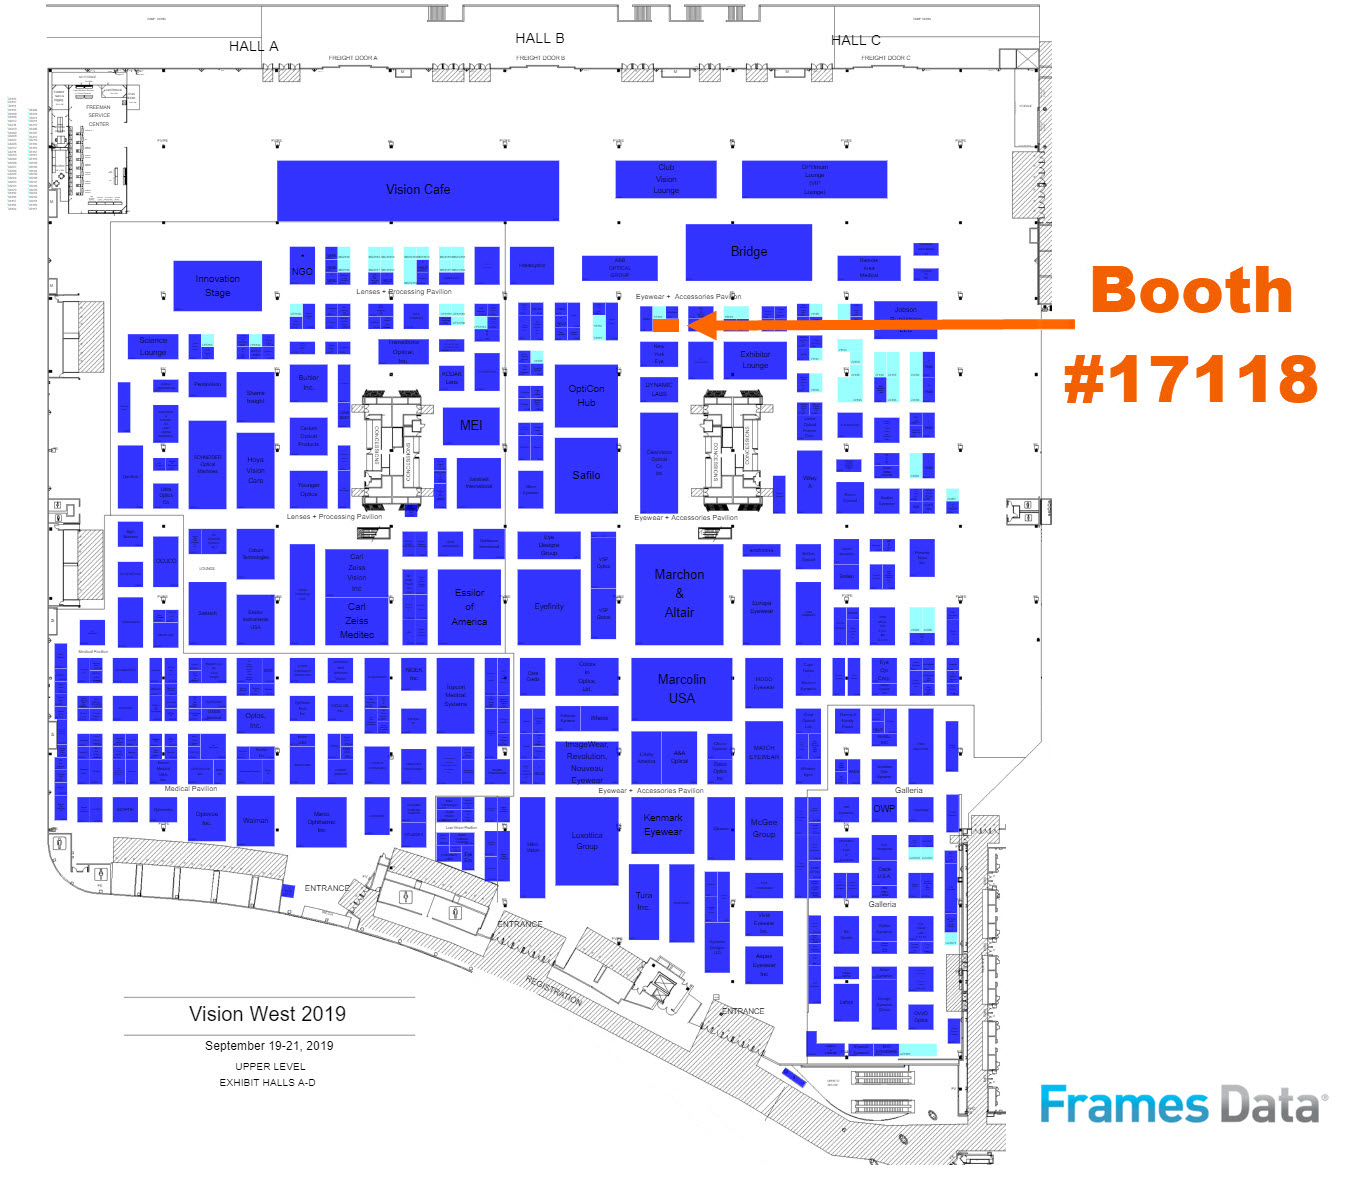 Vision Expo is here! Find Frames Data at Booth #17118